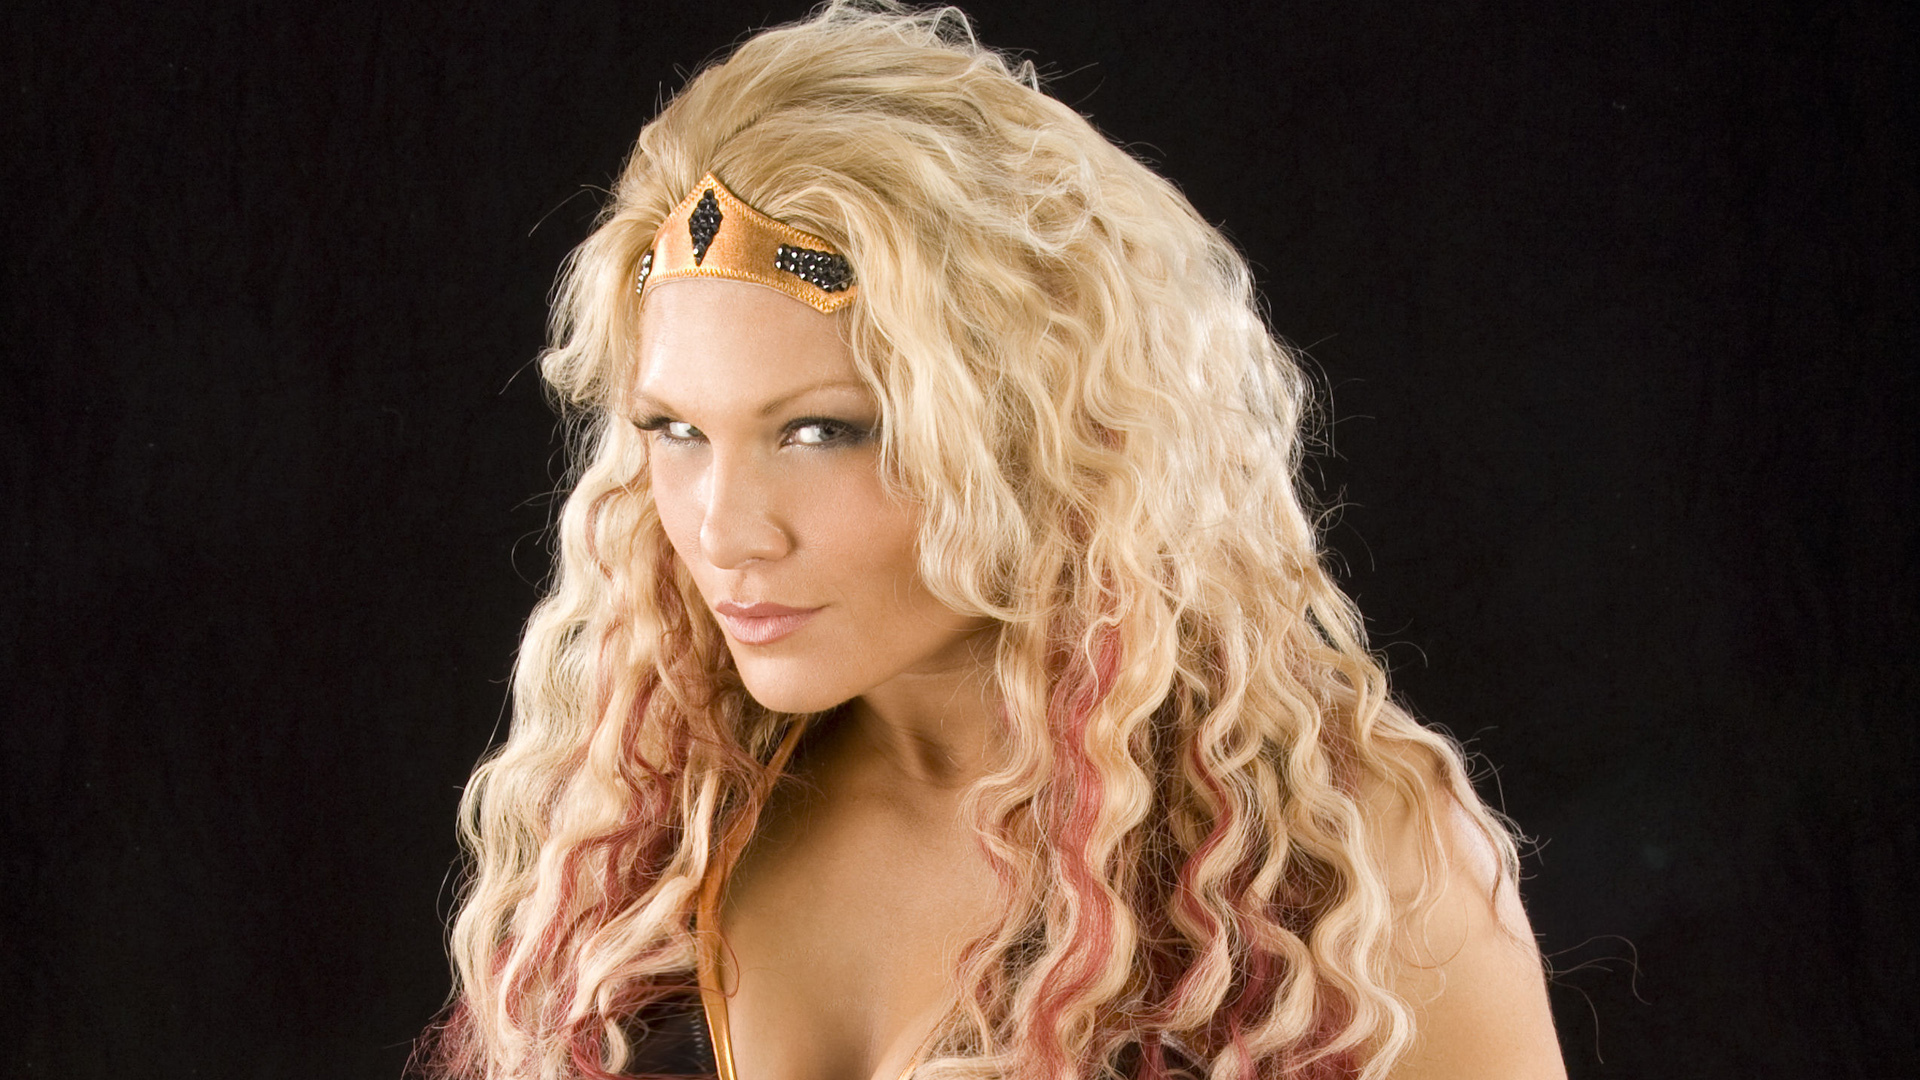 Wwe super star photo wallpapers biography videos beth phoenix - Wwe divas wallpapers ...